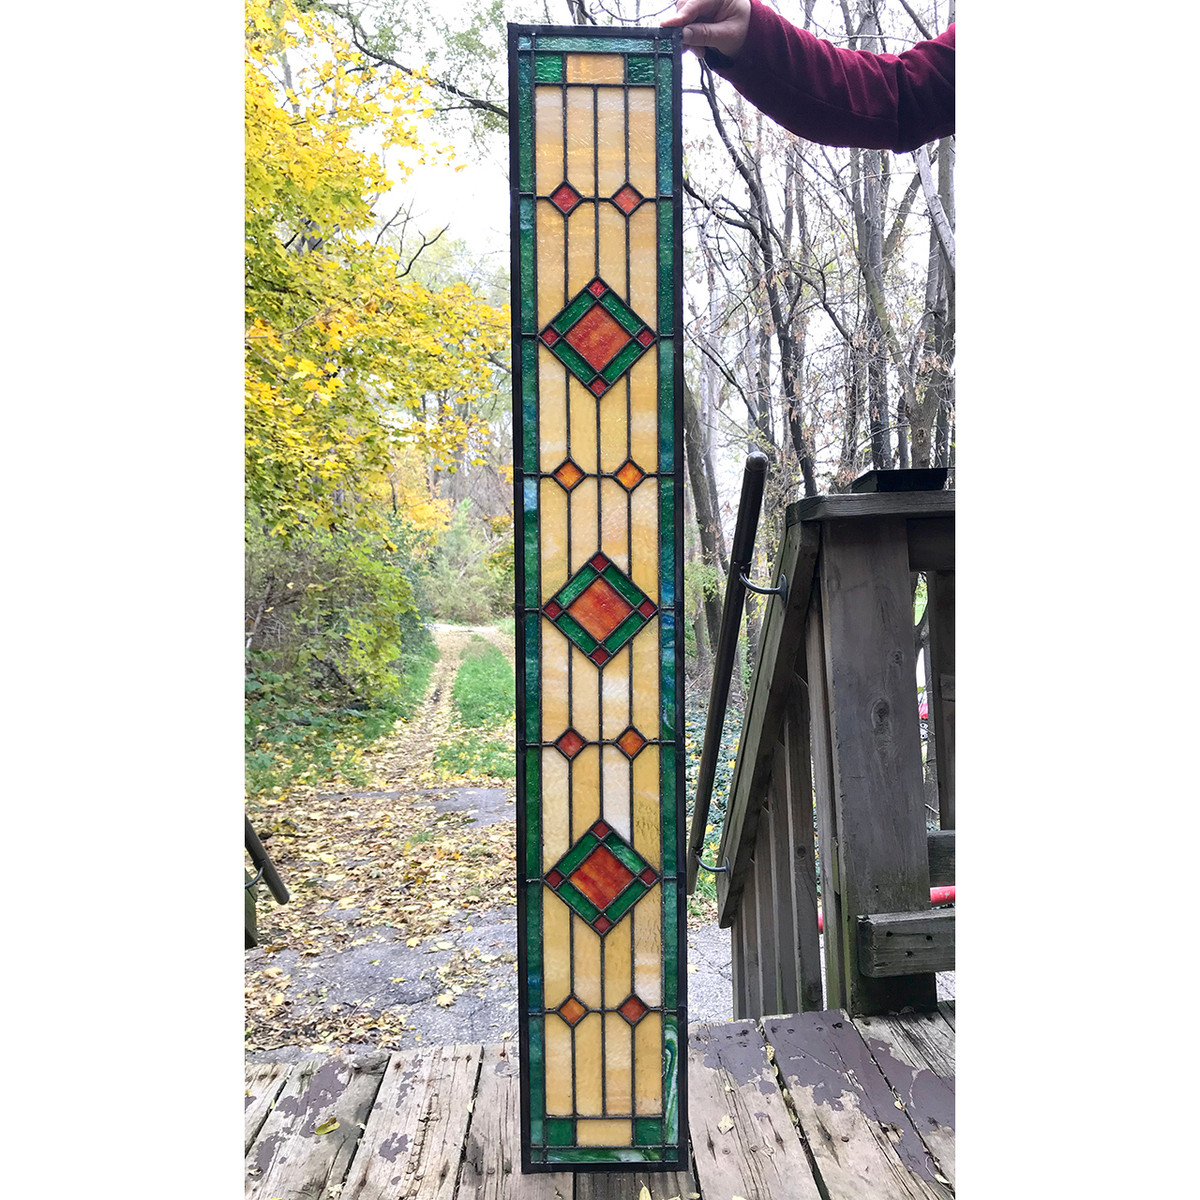 G18084 - Antique Arts & Crafts Stained Glass Window